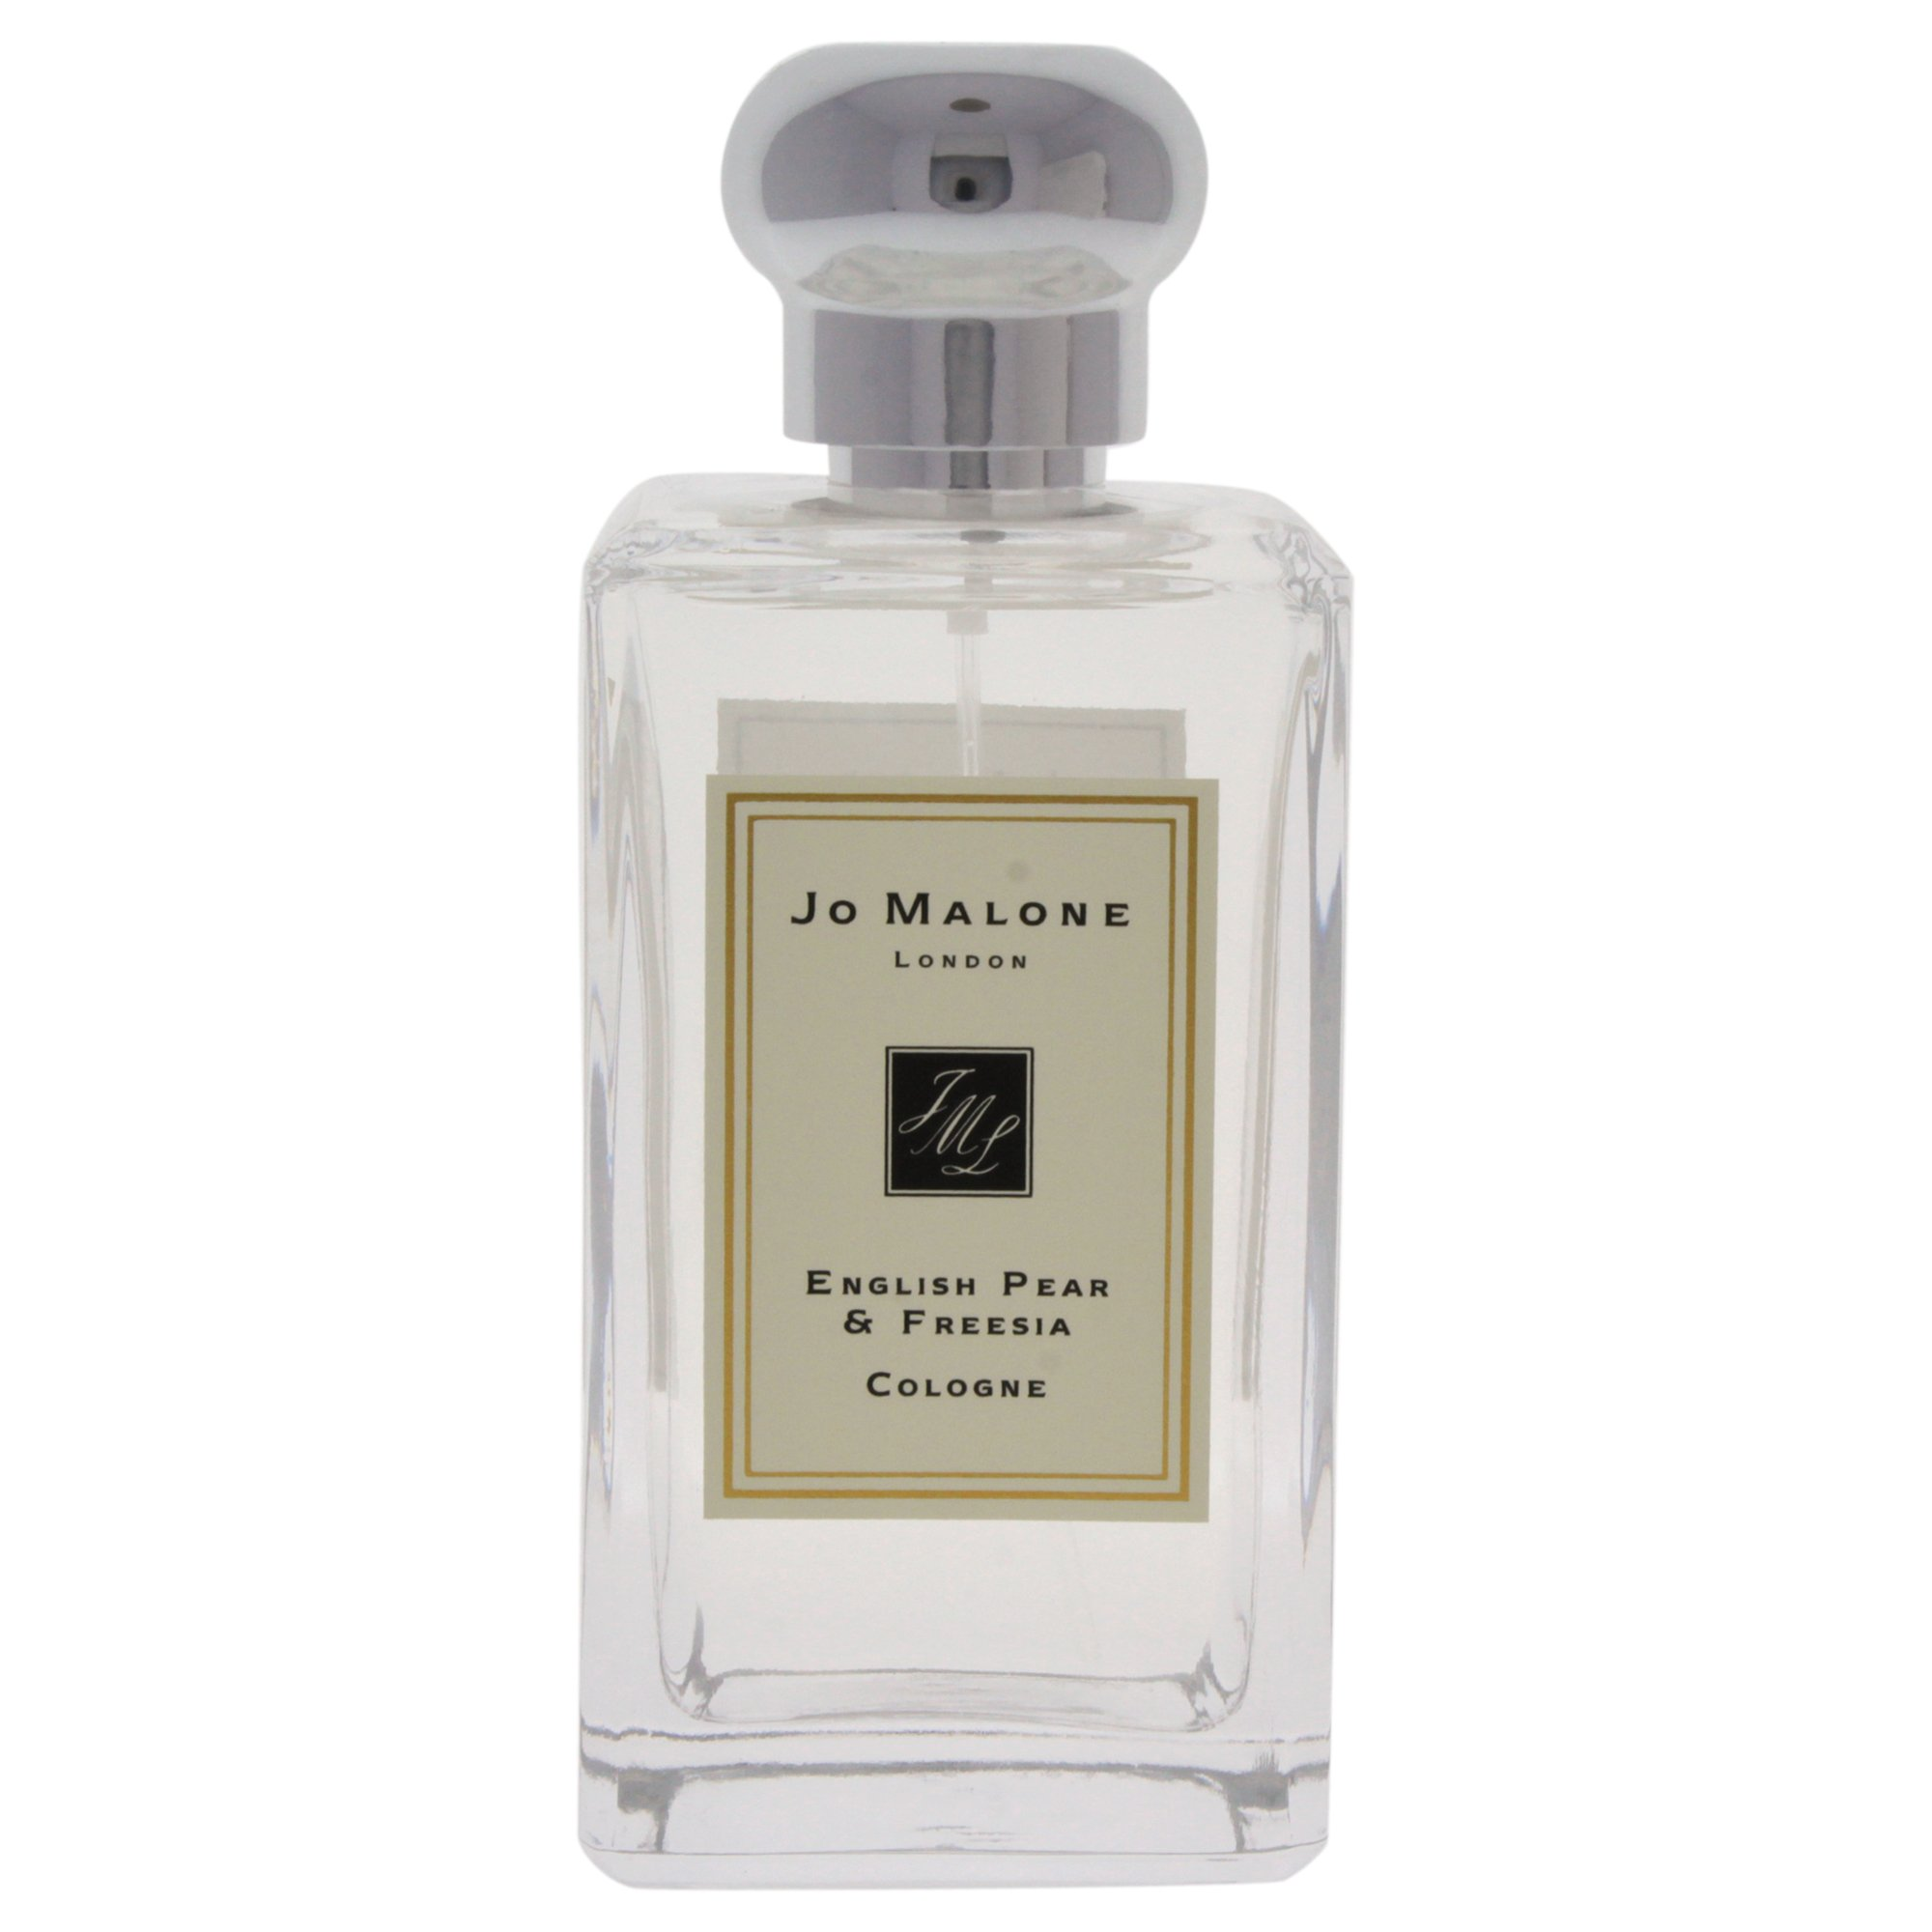 Jo Malone English Pear & Freesia Cologne Spray for Women, 3.4 Ounce by Jo Malone